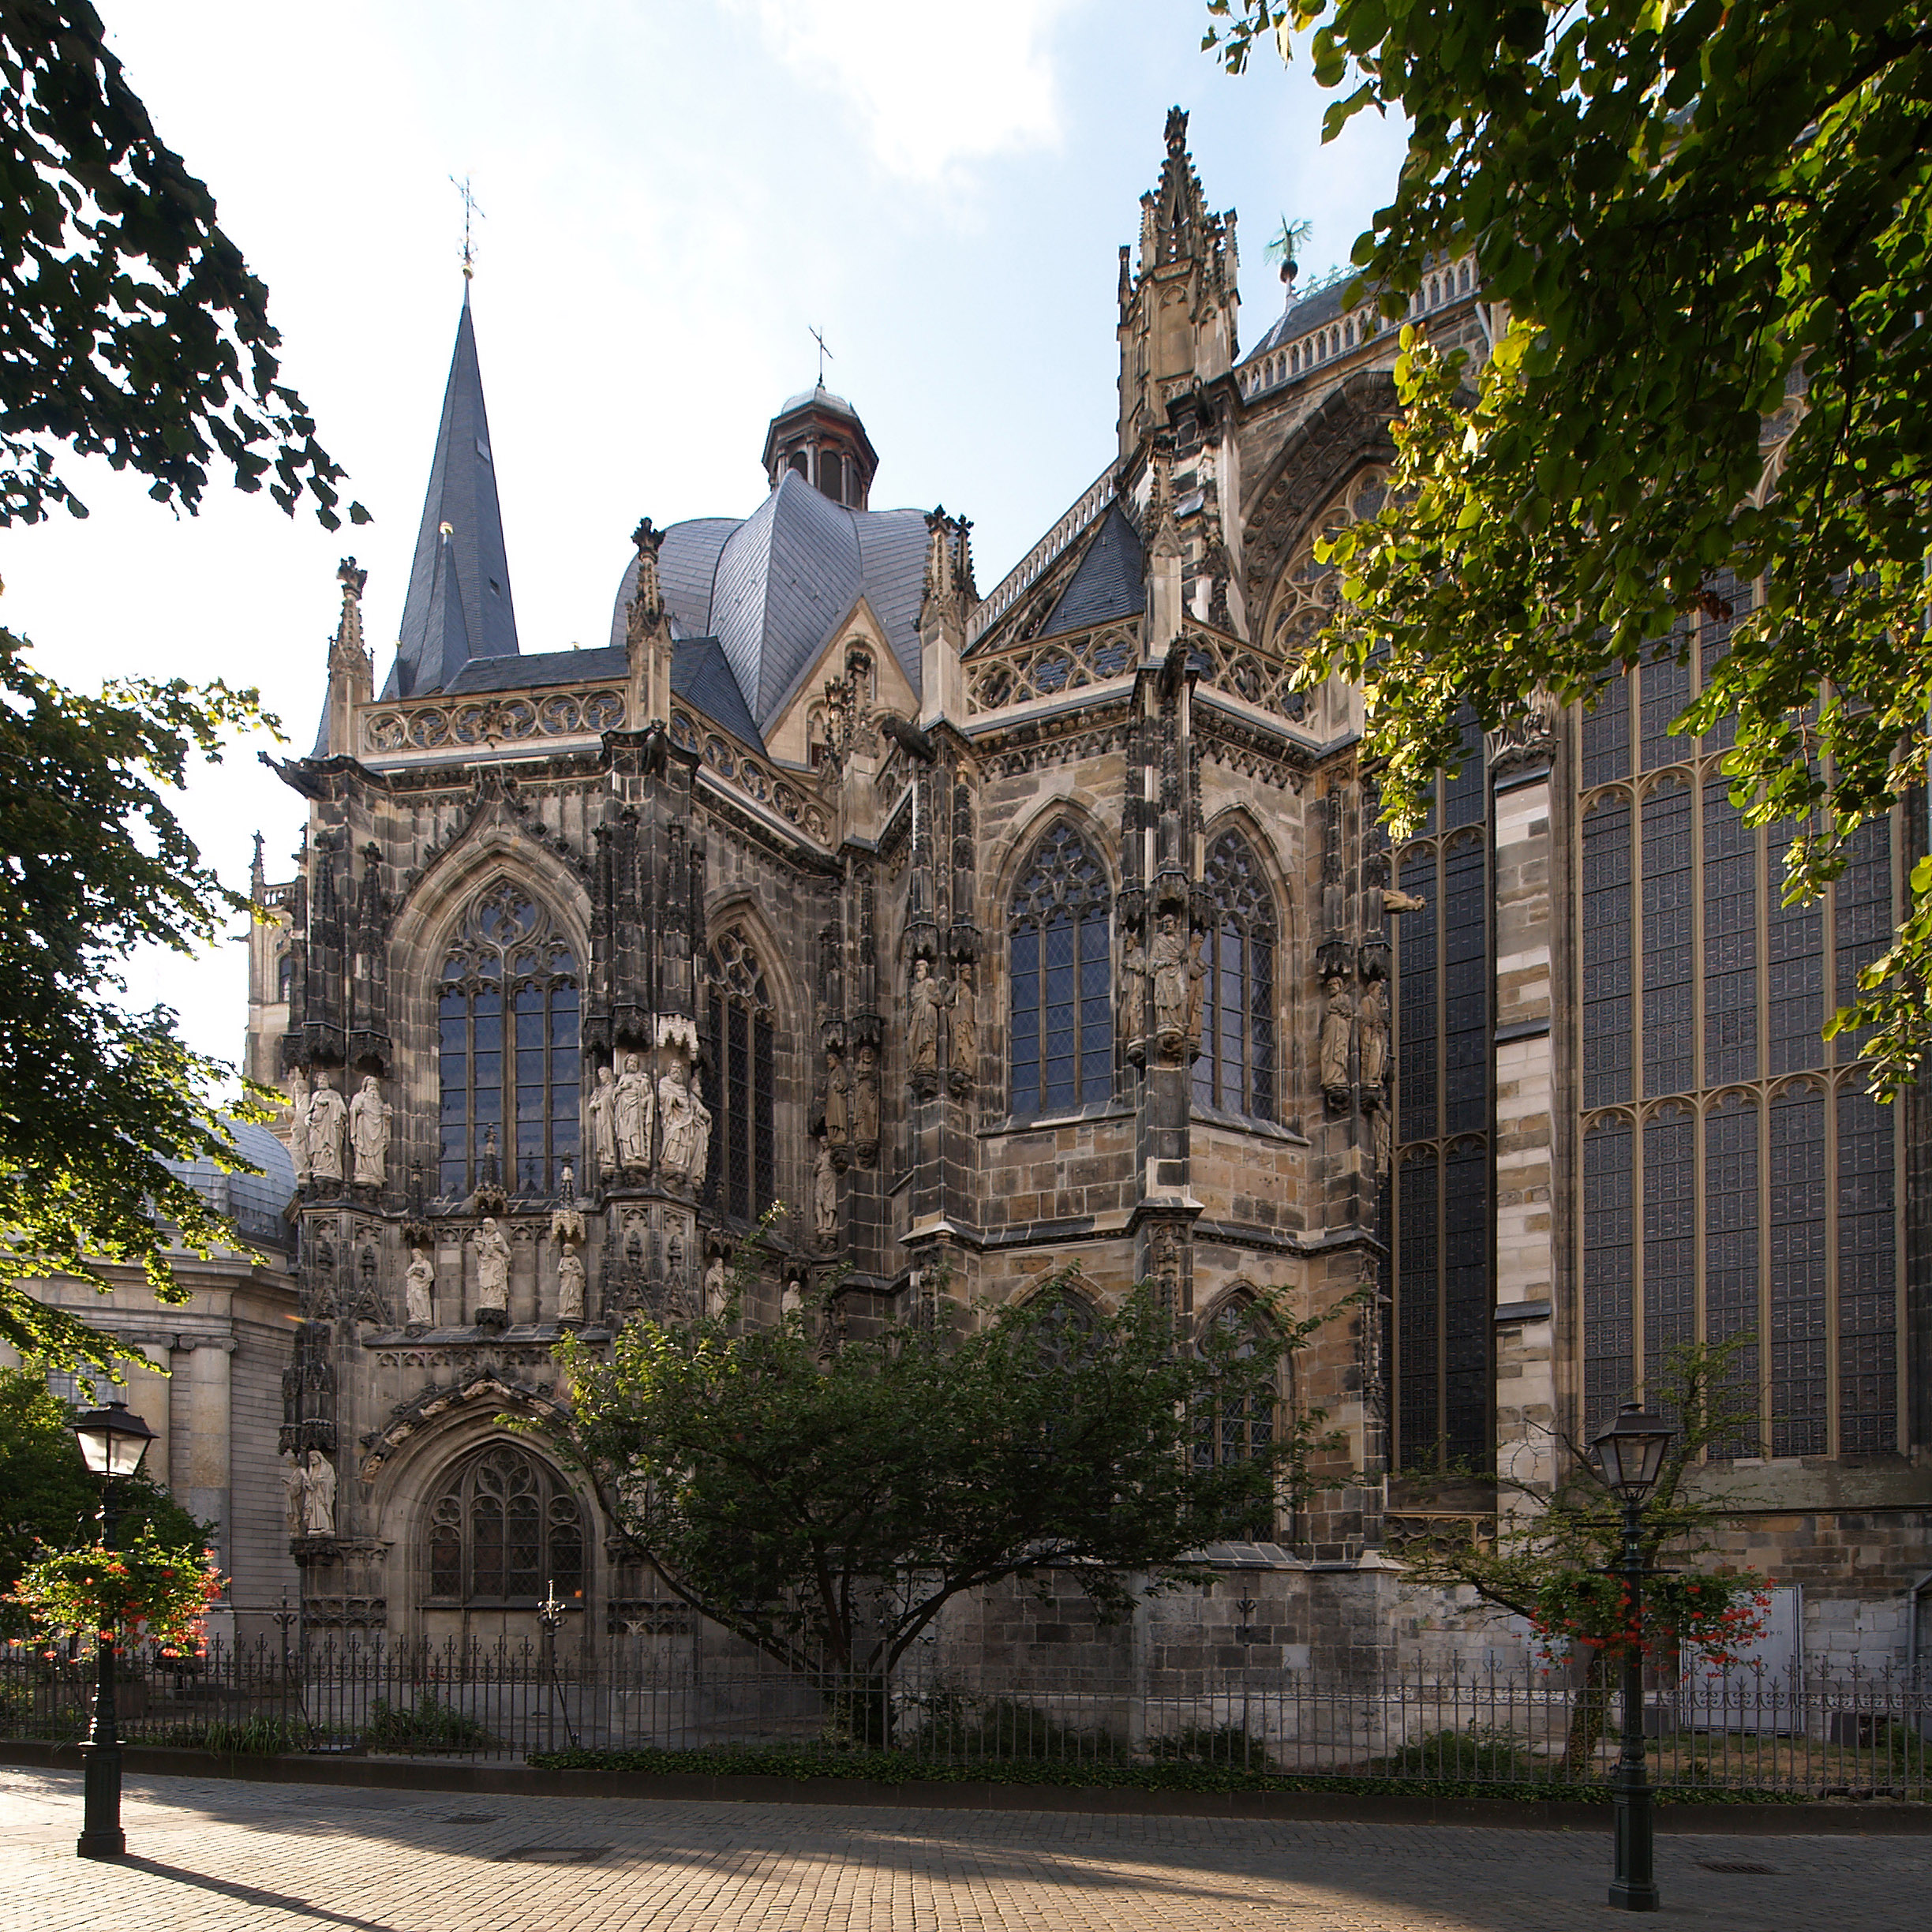 File:Aachen cathedral south side.jpg - Wikimedia Commons